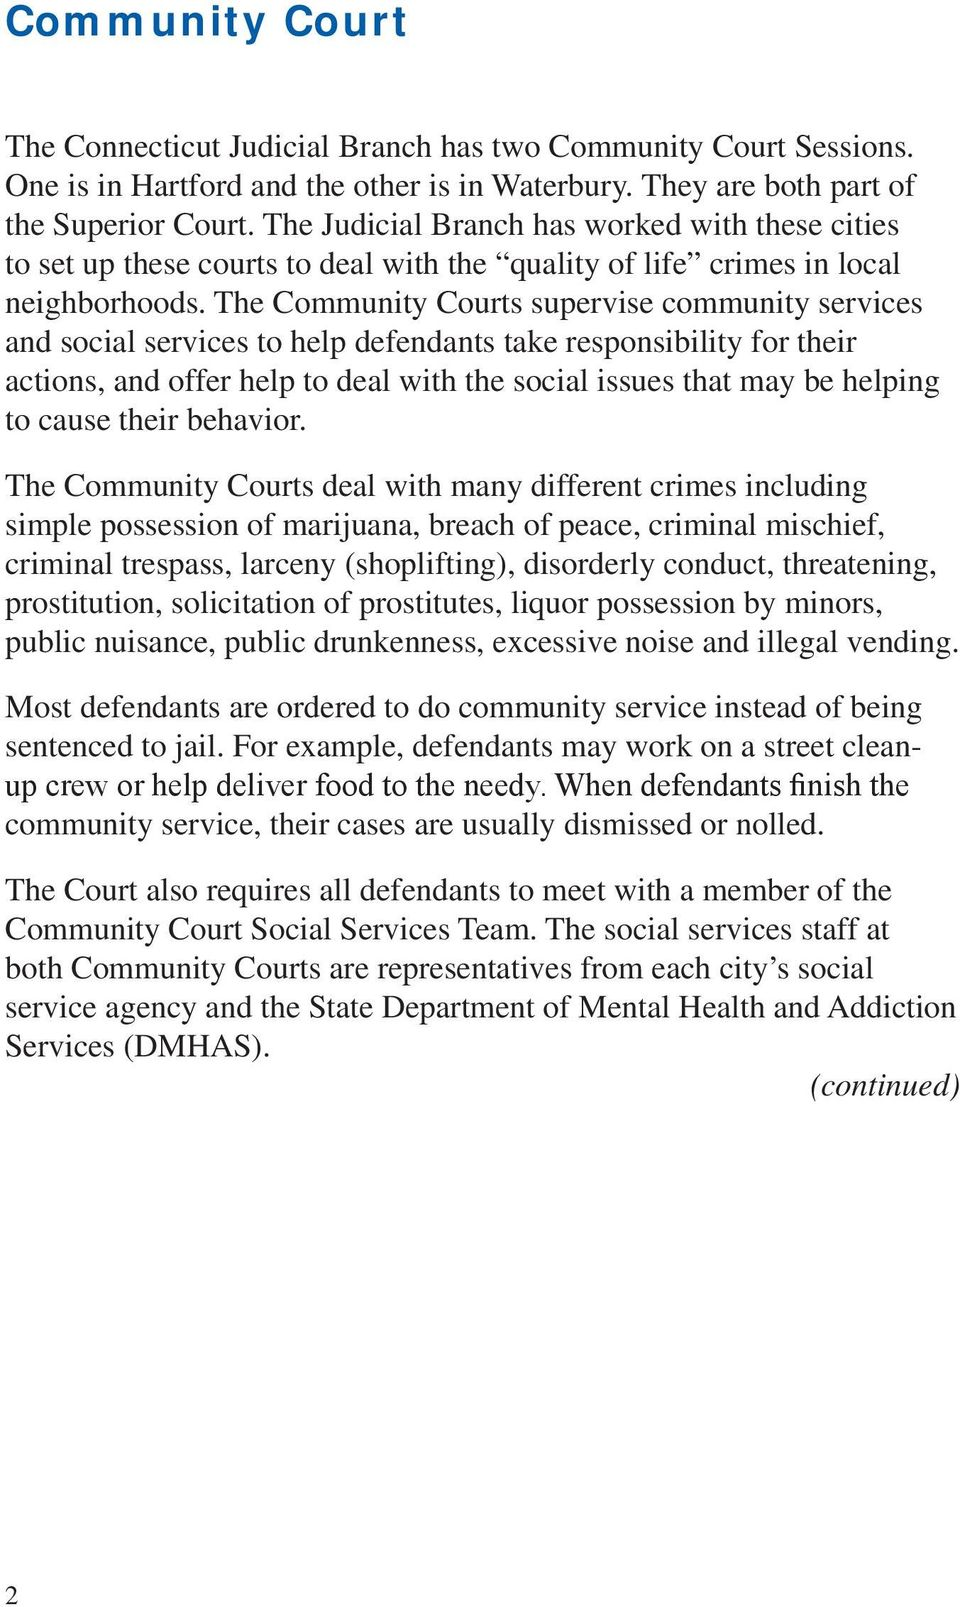 The Community Courts supervise community services and social services to help defendants take responsibility for their actions, and offer help to deal with the social issues that may be helping to